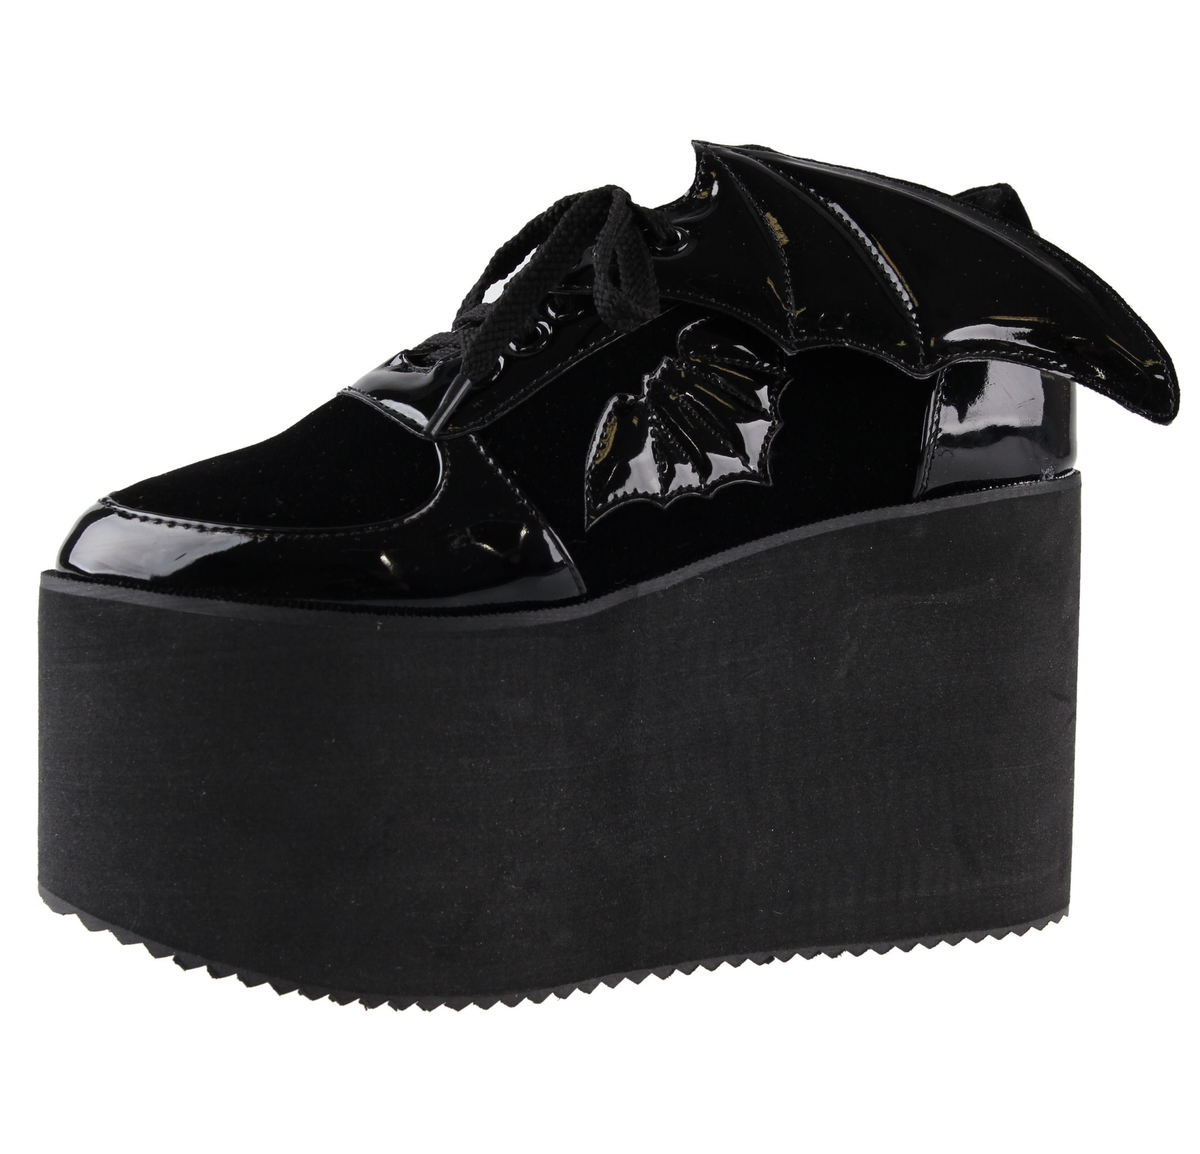 boty s klínem dámské - Creature Of The Night Flatform - IRON FIST - IFW006007-BLACK 36